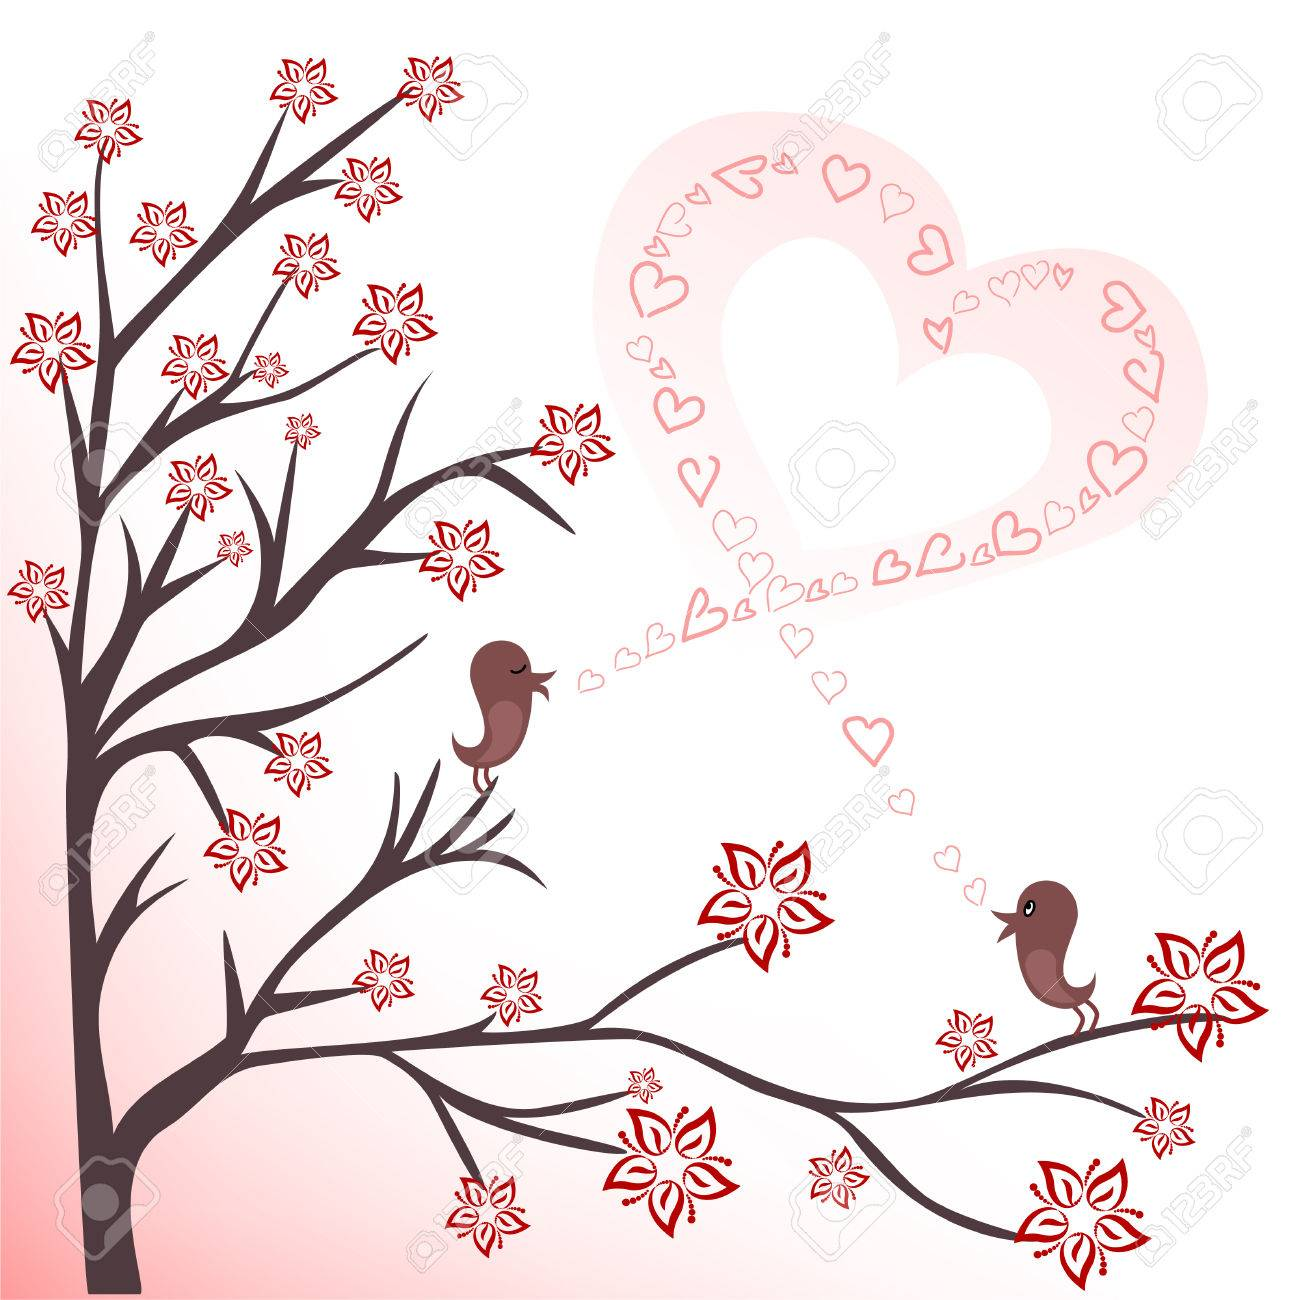 two love birds on flowering branches sing a song Stock Vector - 8809834